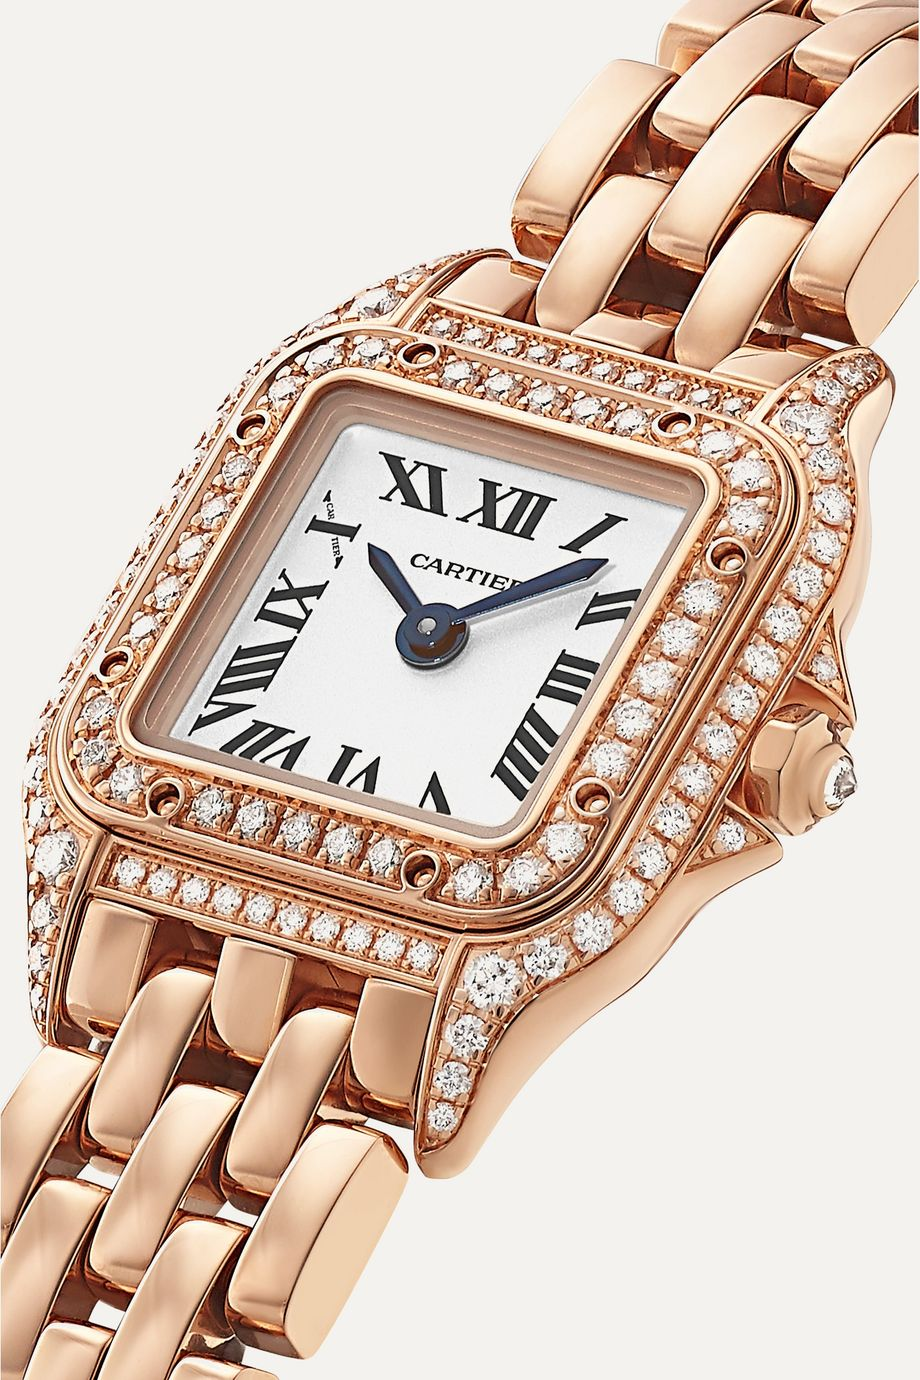 Cartier Montre en or rose 18 carats et diamants Panthère de Cartier Manchette Small 27 mm